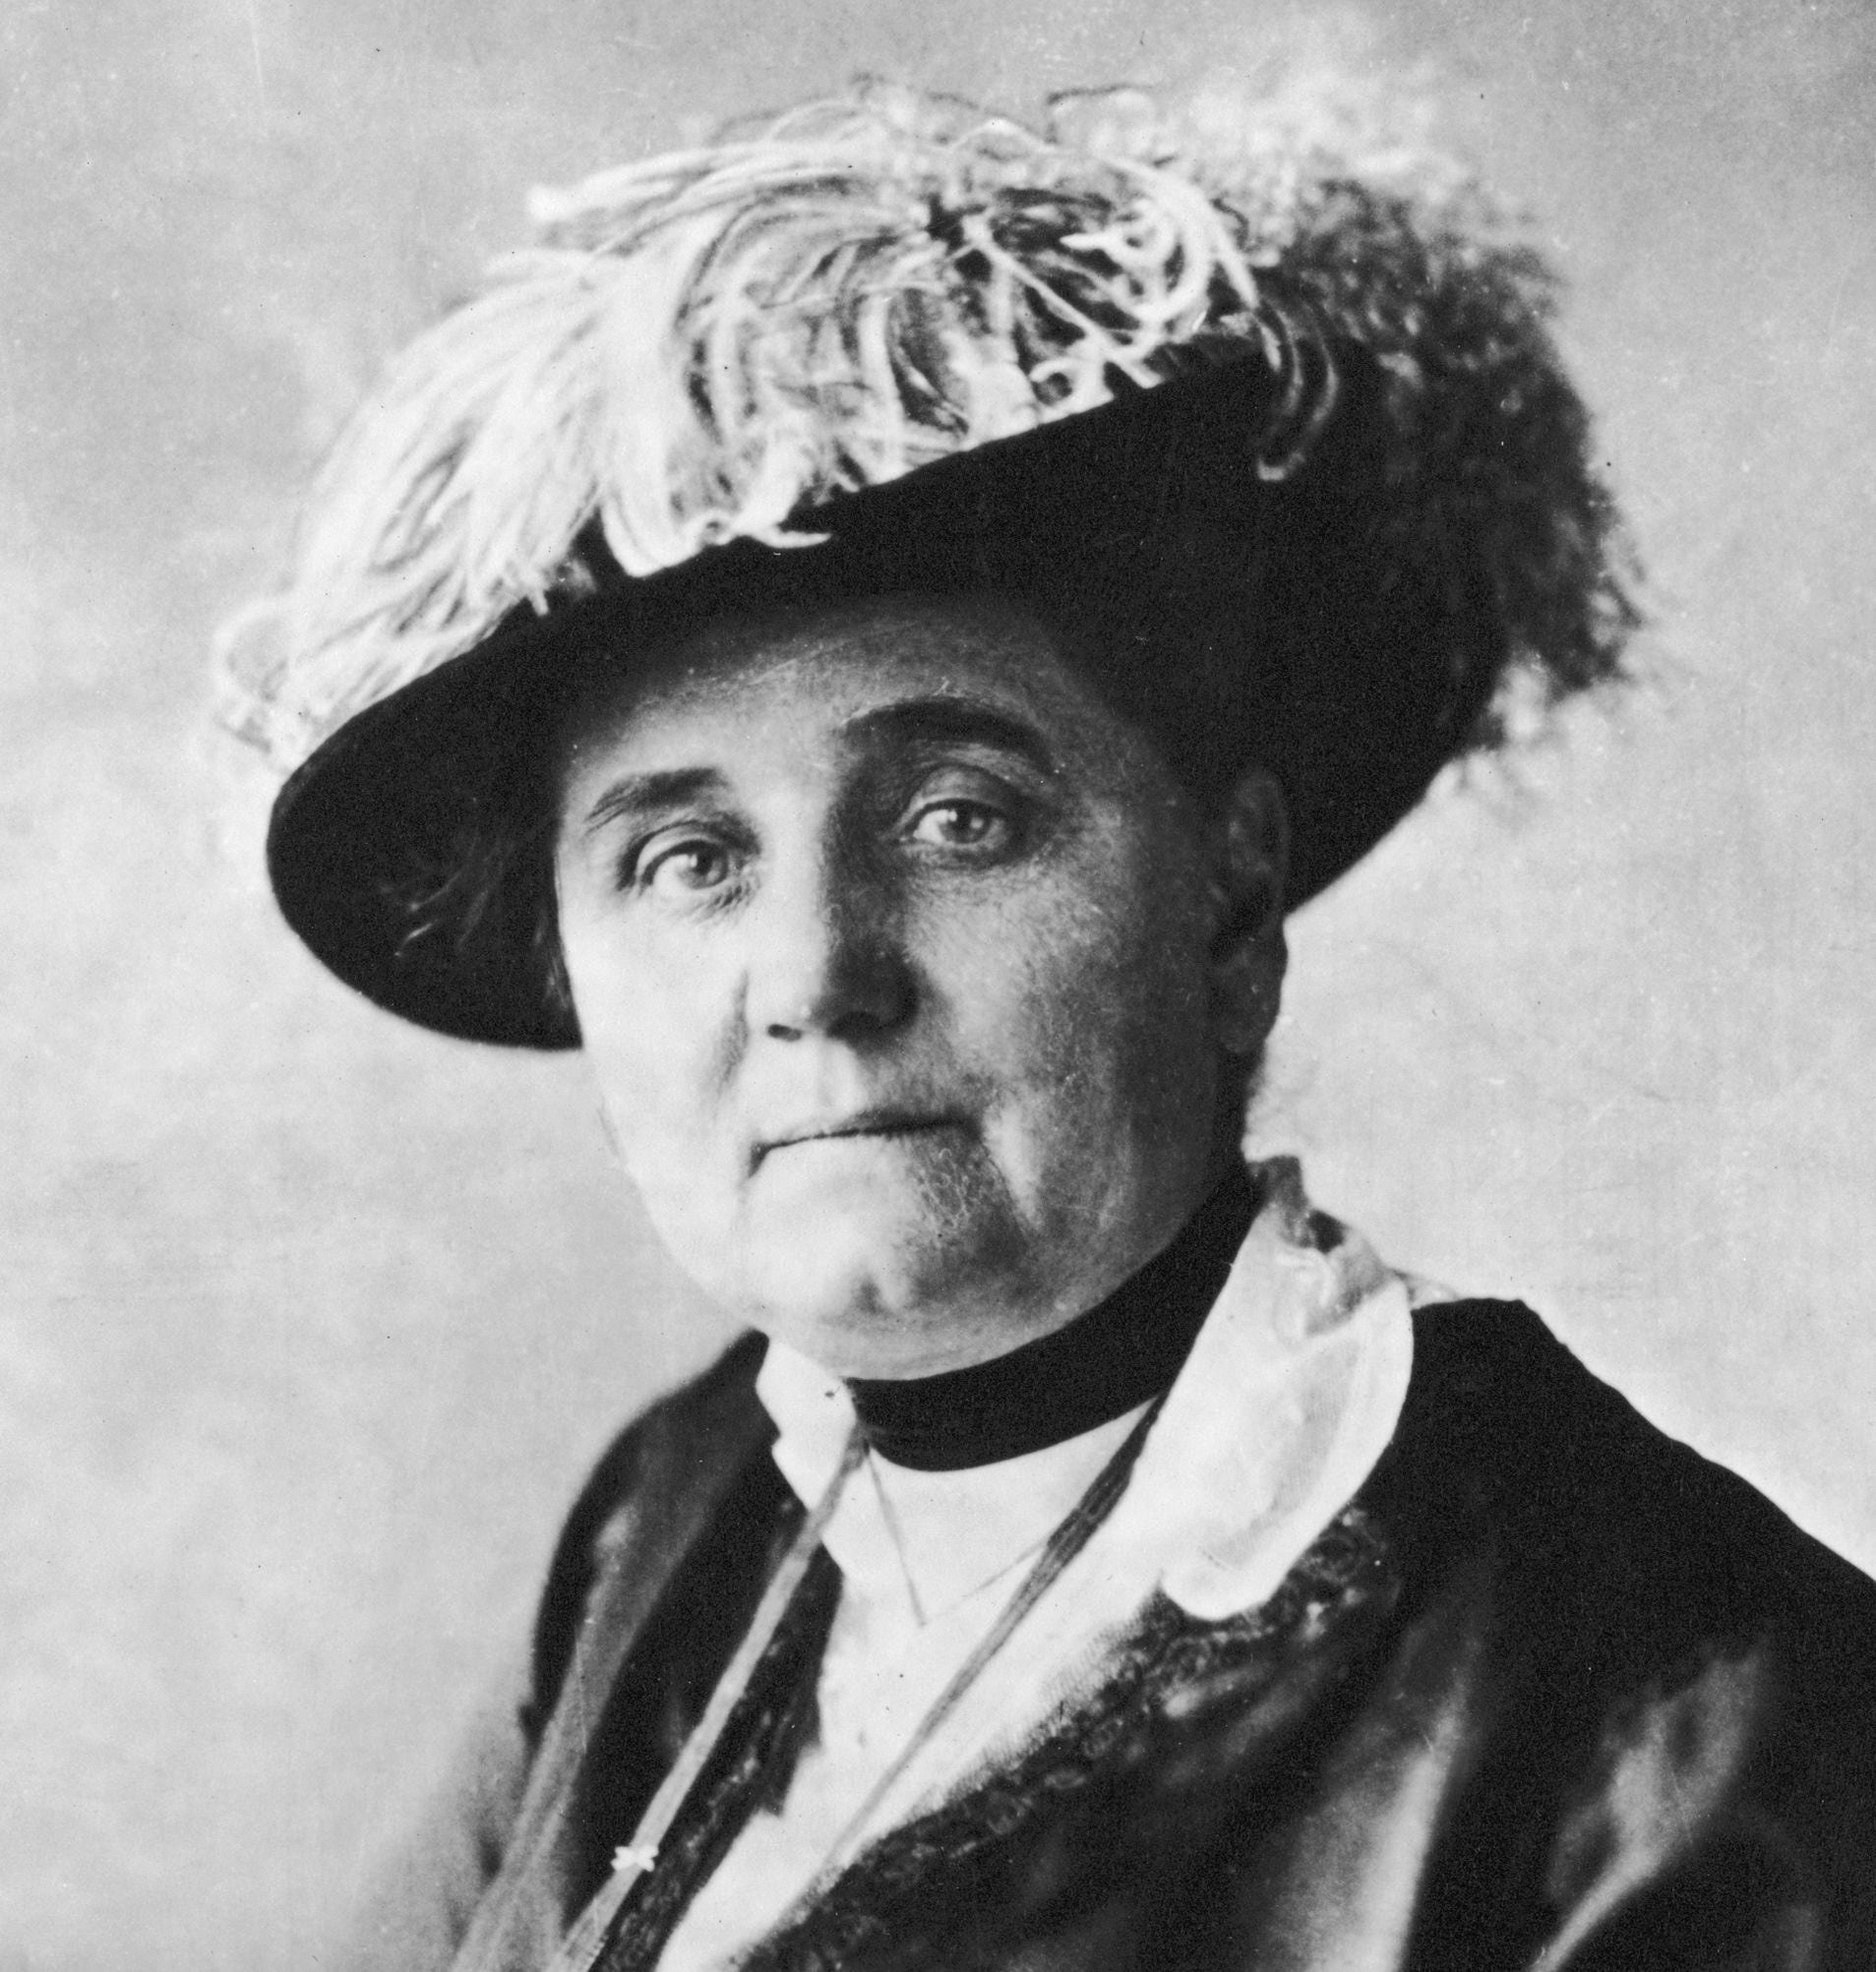 janne addams essay Jane addams made important contributions to education, sociology, social work, human rights, and labor reform based on knowledge gained through activism in these areas.